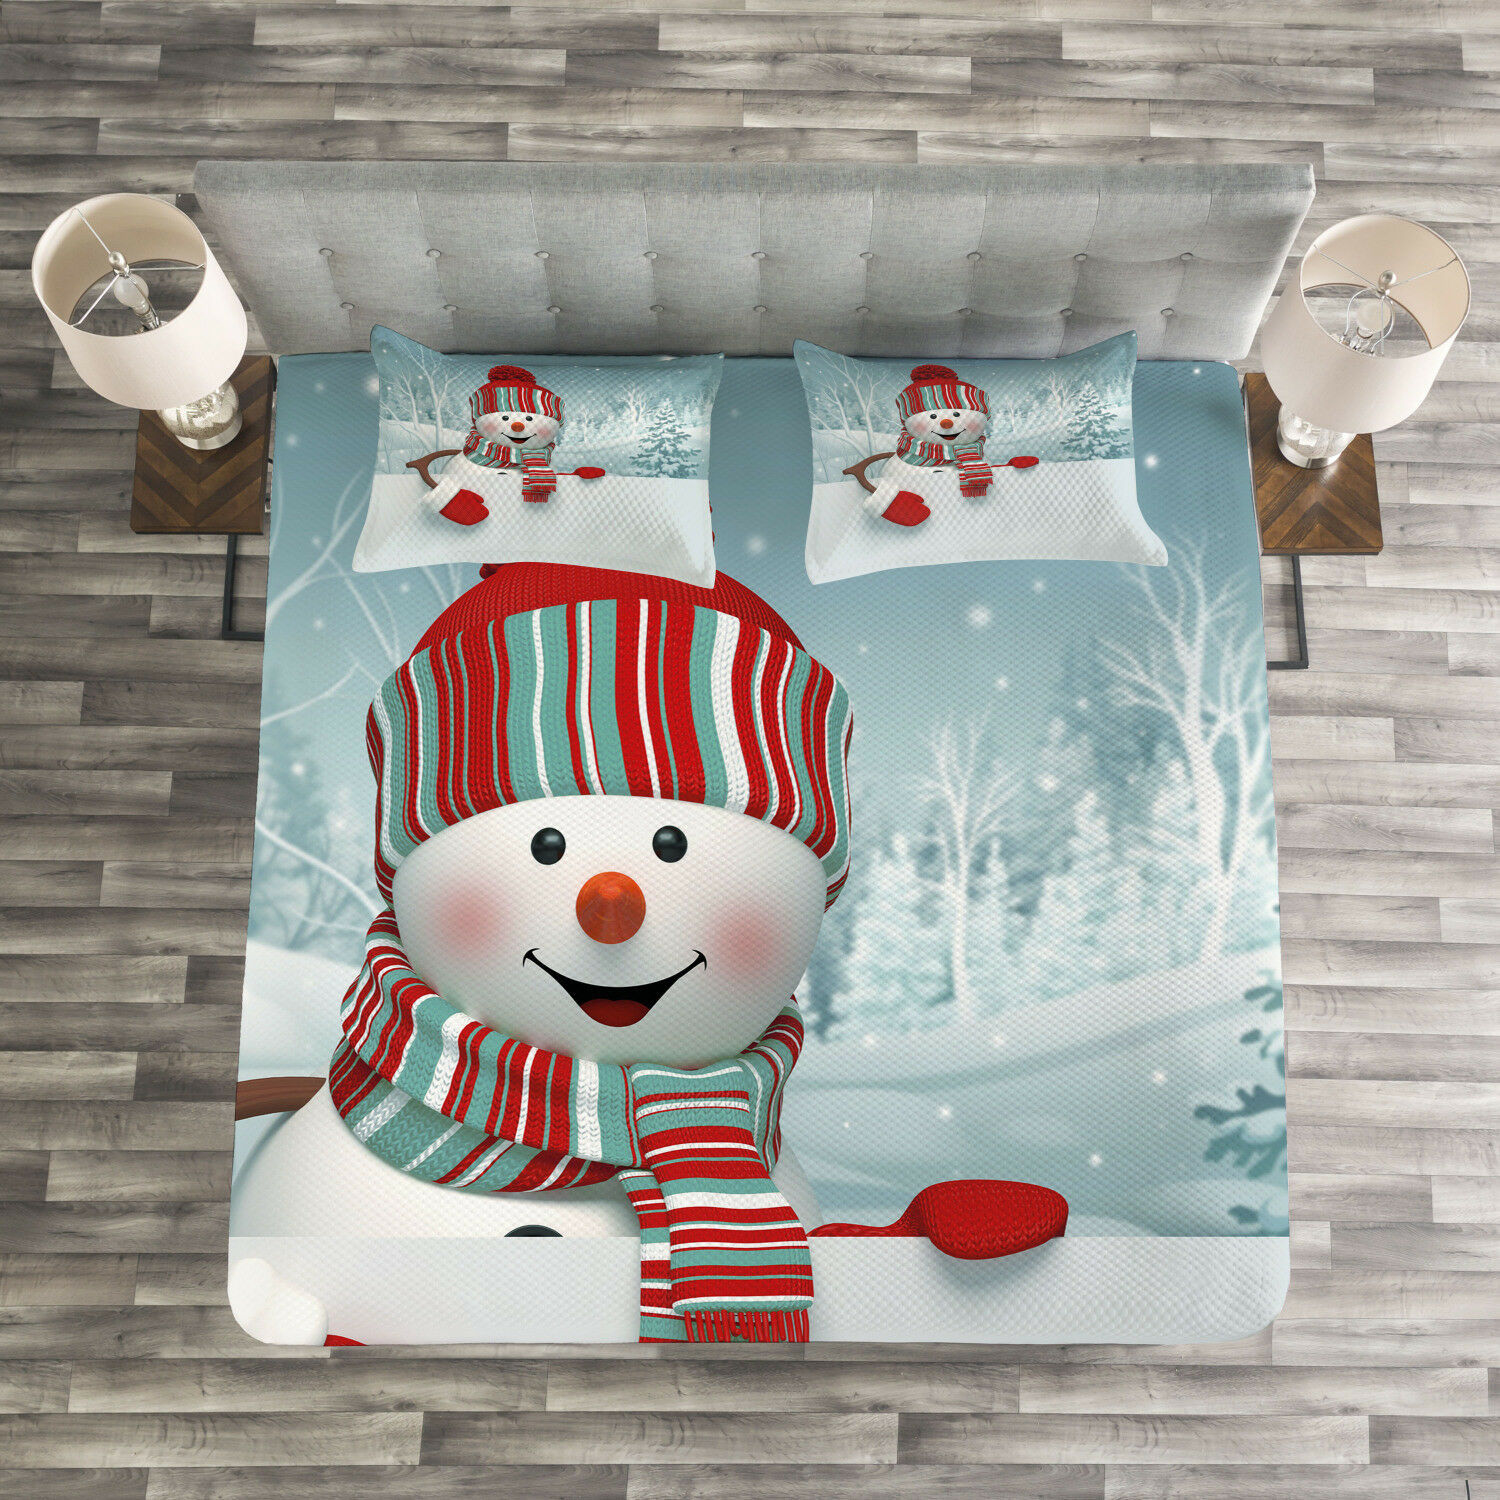 Snowman Quilted Bedspread & Pillow Shams Set, Smiling 3D Mascot Trees Print